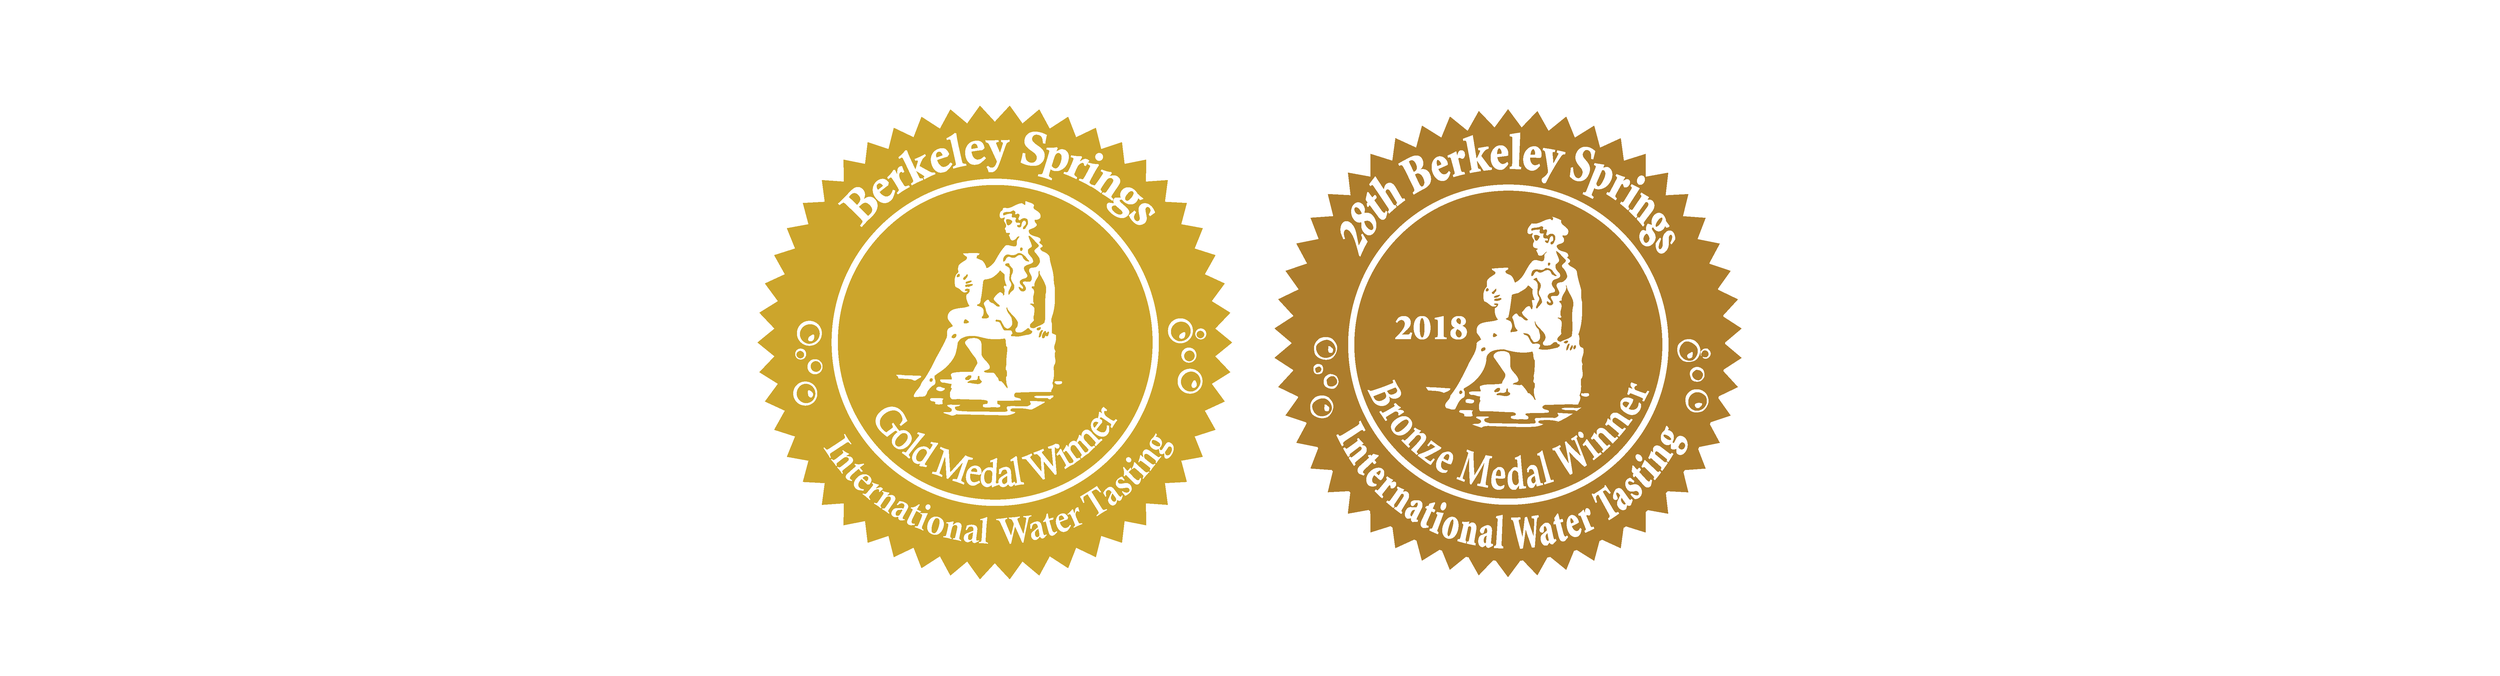 Berkeley Springs Bronze and Gold - awards only-01.png